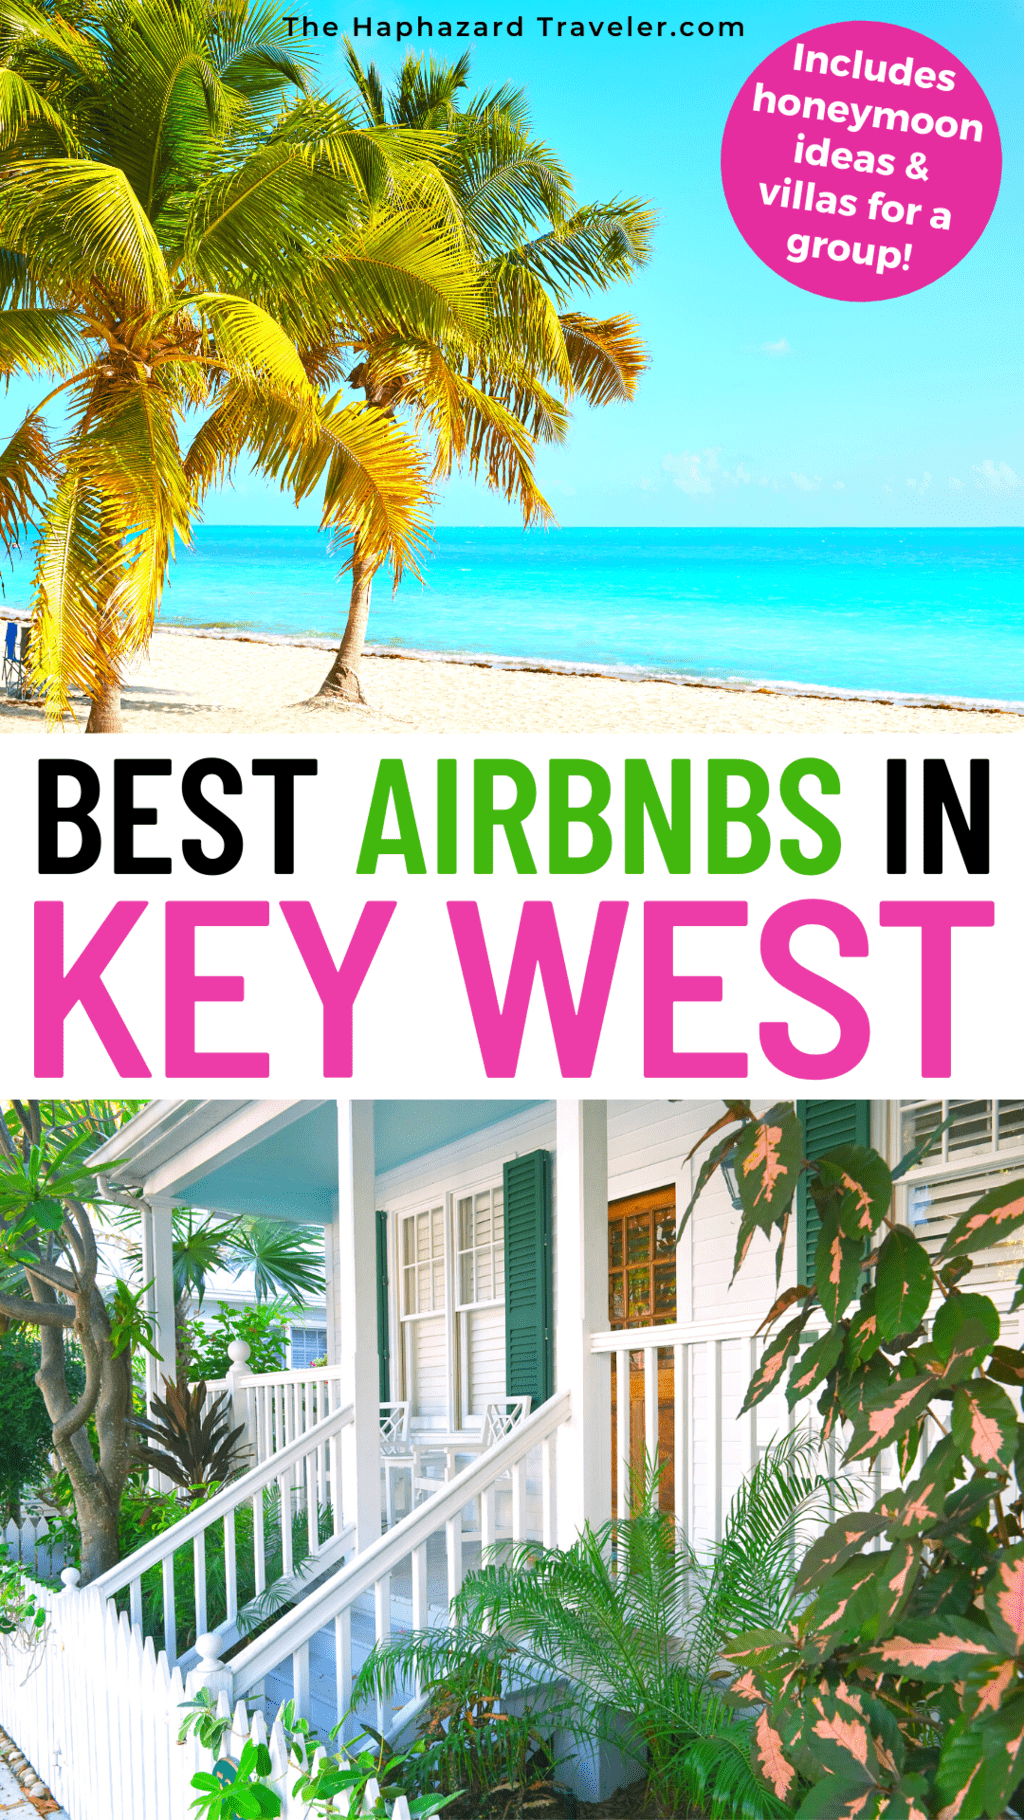 Airbnb Key West Florida Best Rentals With Pools More Honeymoon In Key West Airbnb Key West Key West